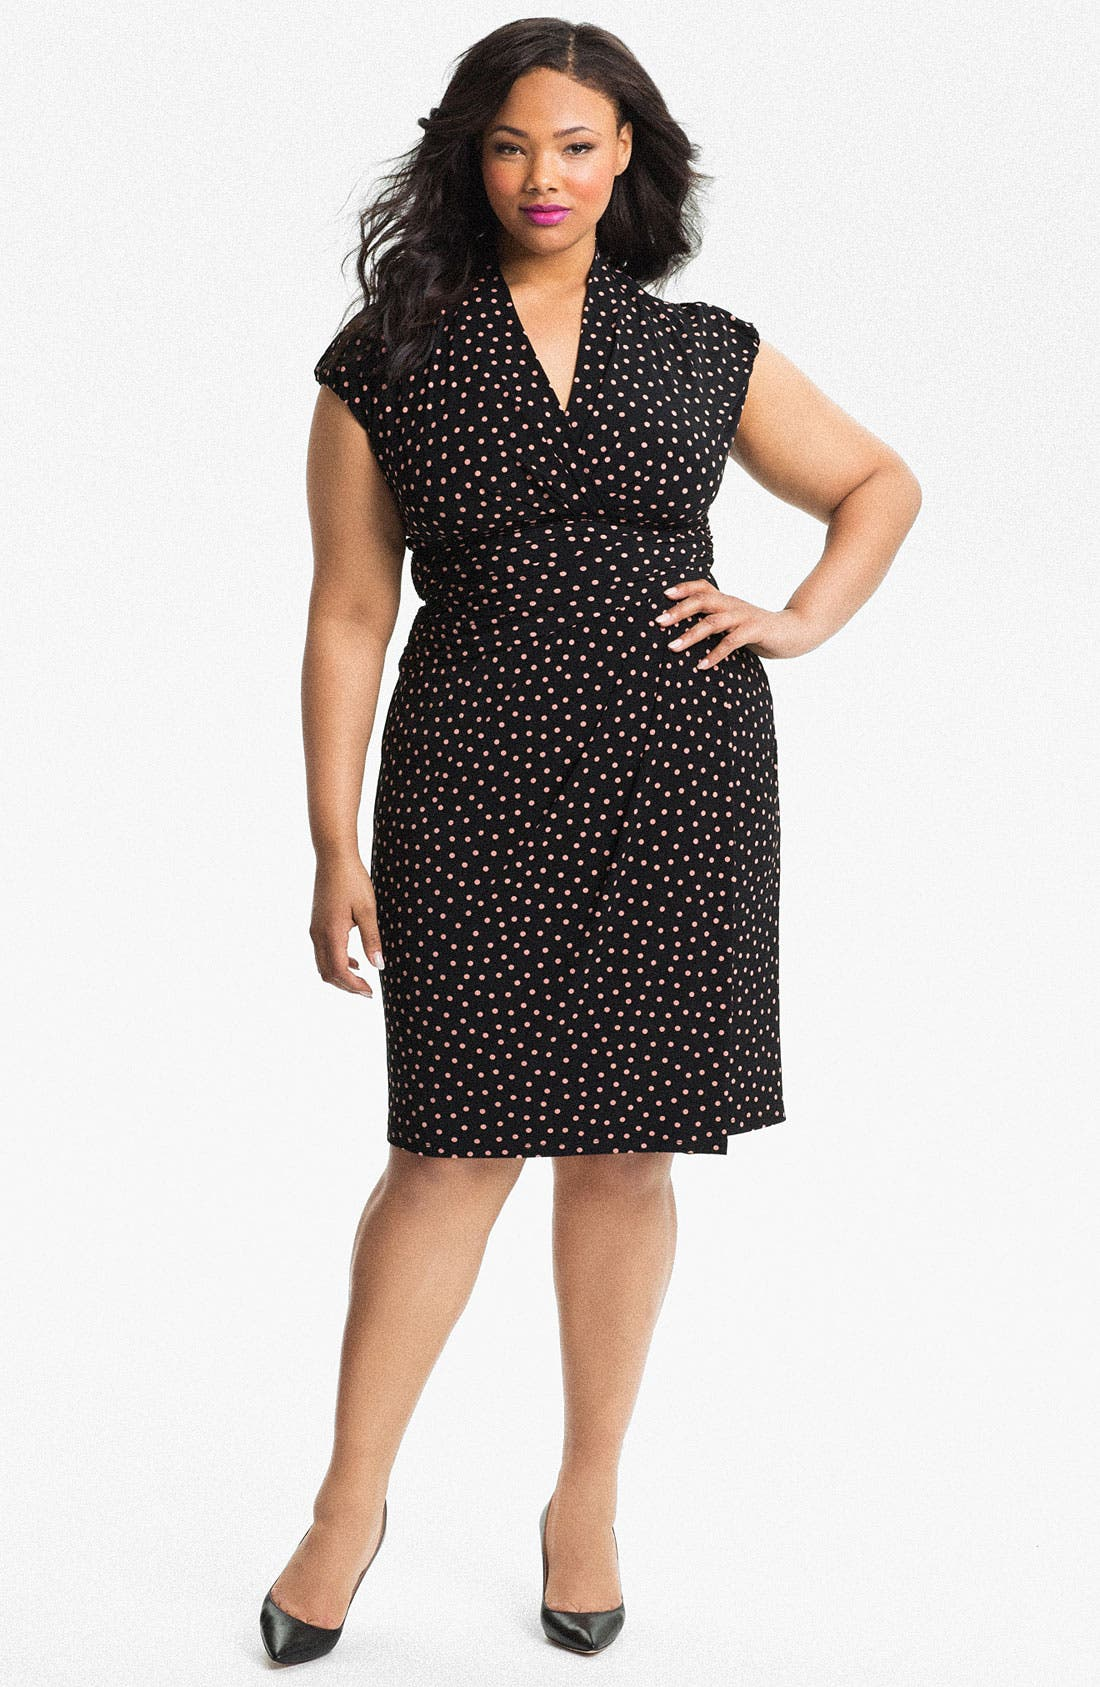 Alternate Image 1 Selected - Suzi Chin for Maggy Boutique Print Faux Wrap Dress (Plus Size)